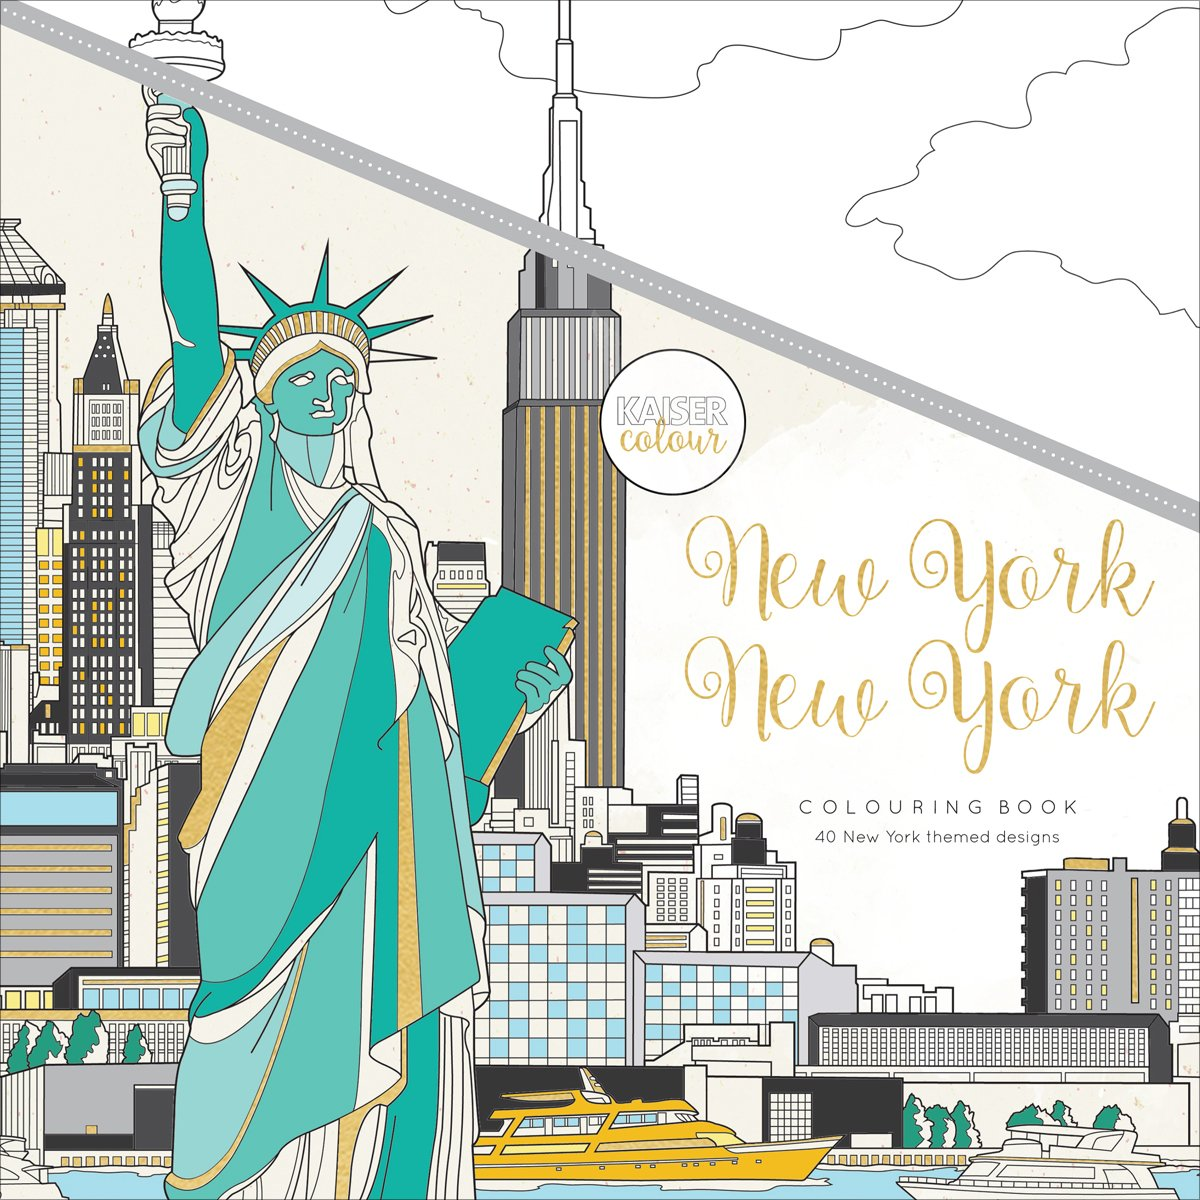 Kaisercraft New York KaiserColour Perfect Bound Coloring Book, 9.75X9.75 9.75X9.75 CL552